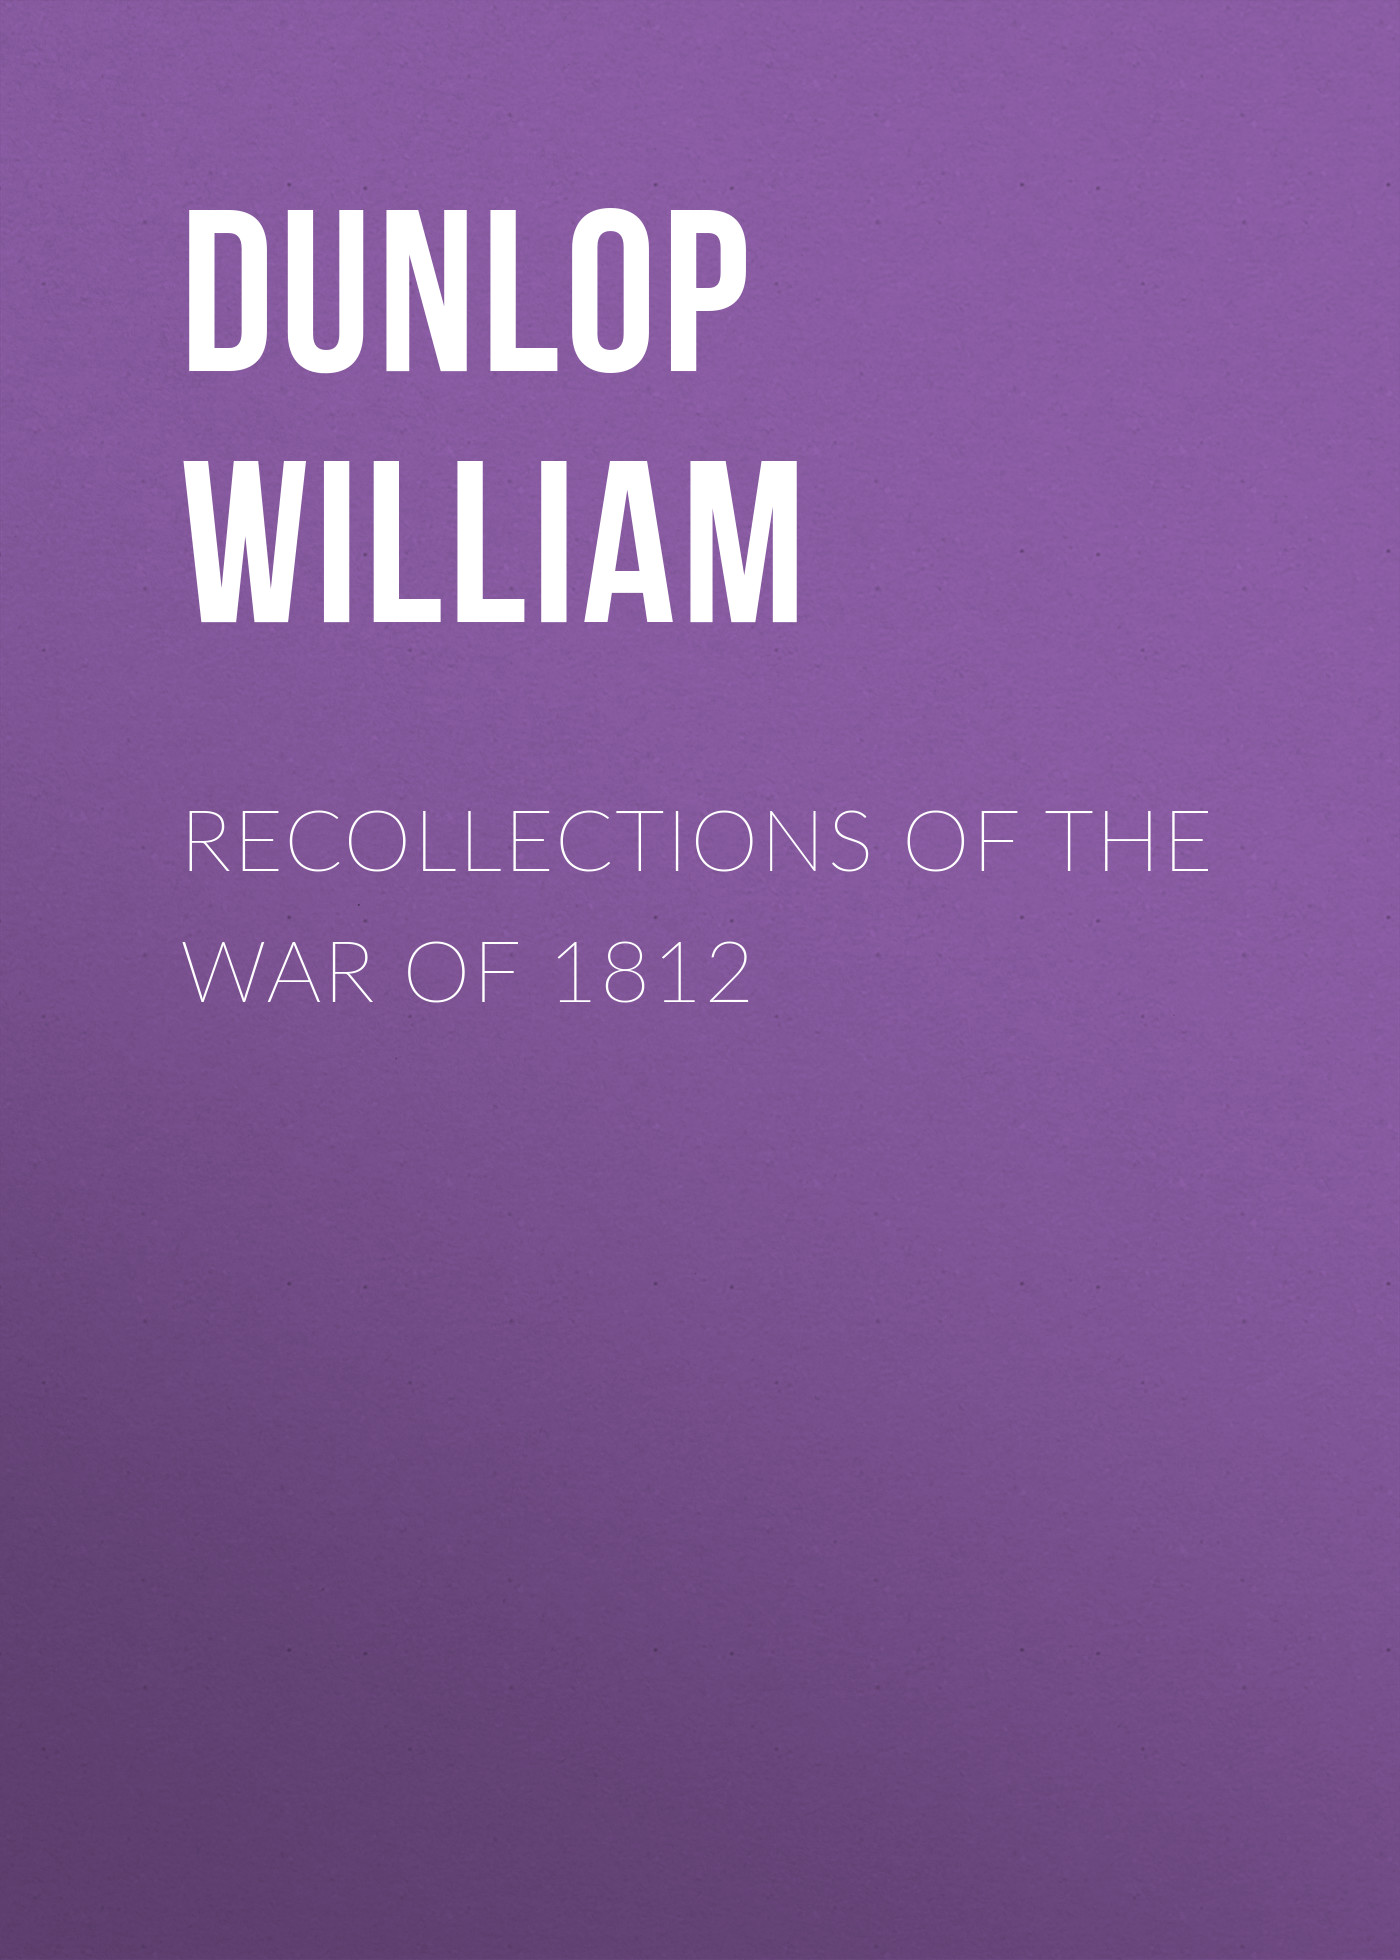 Dunlop William Recollections of the War of 1812